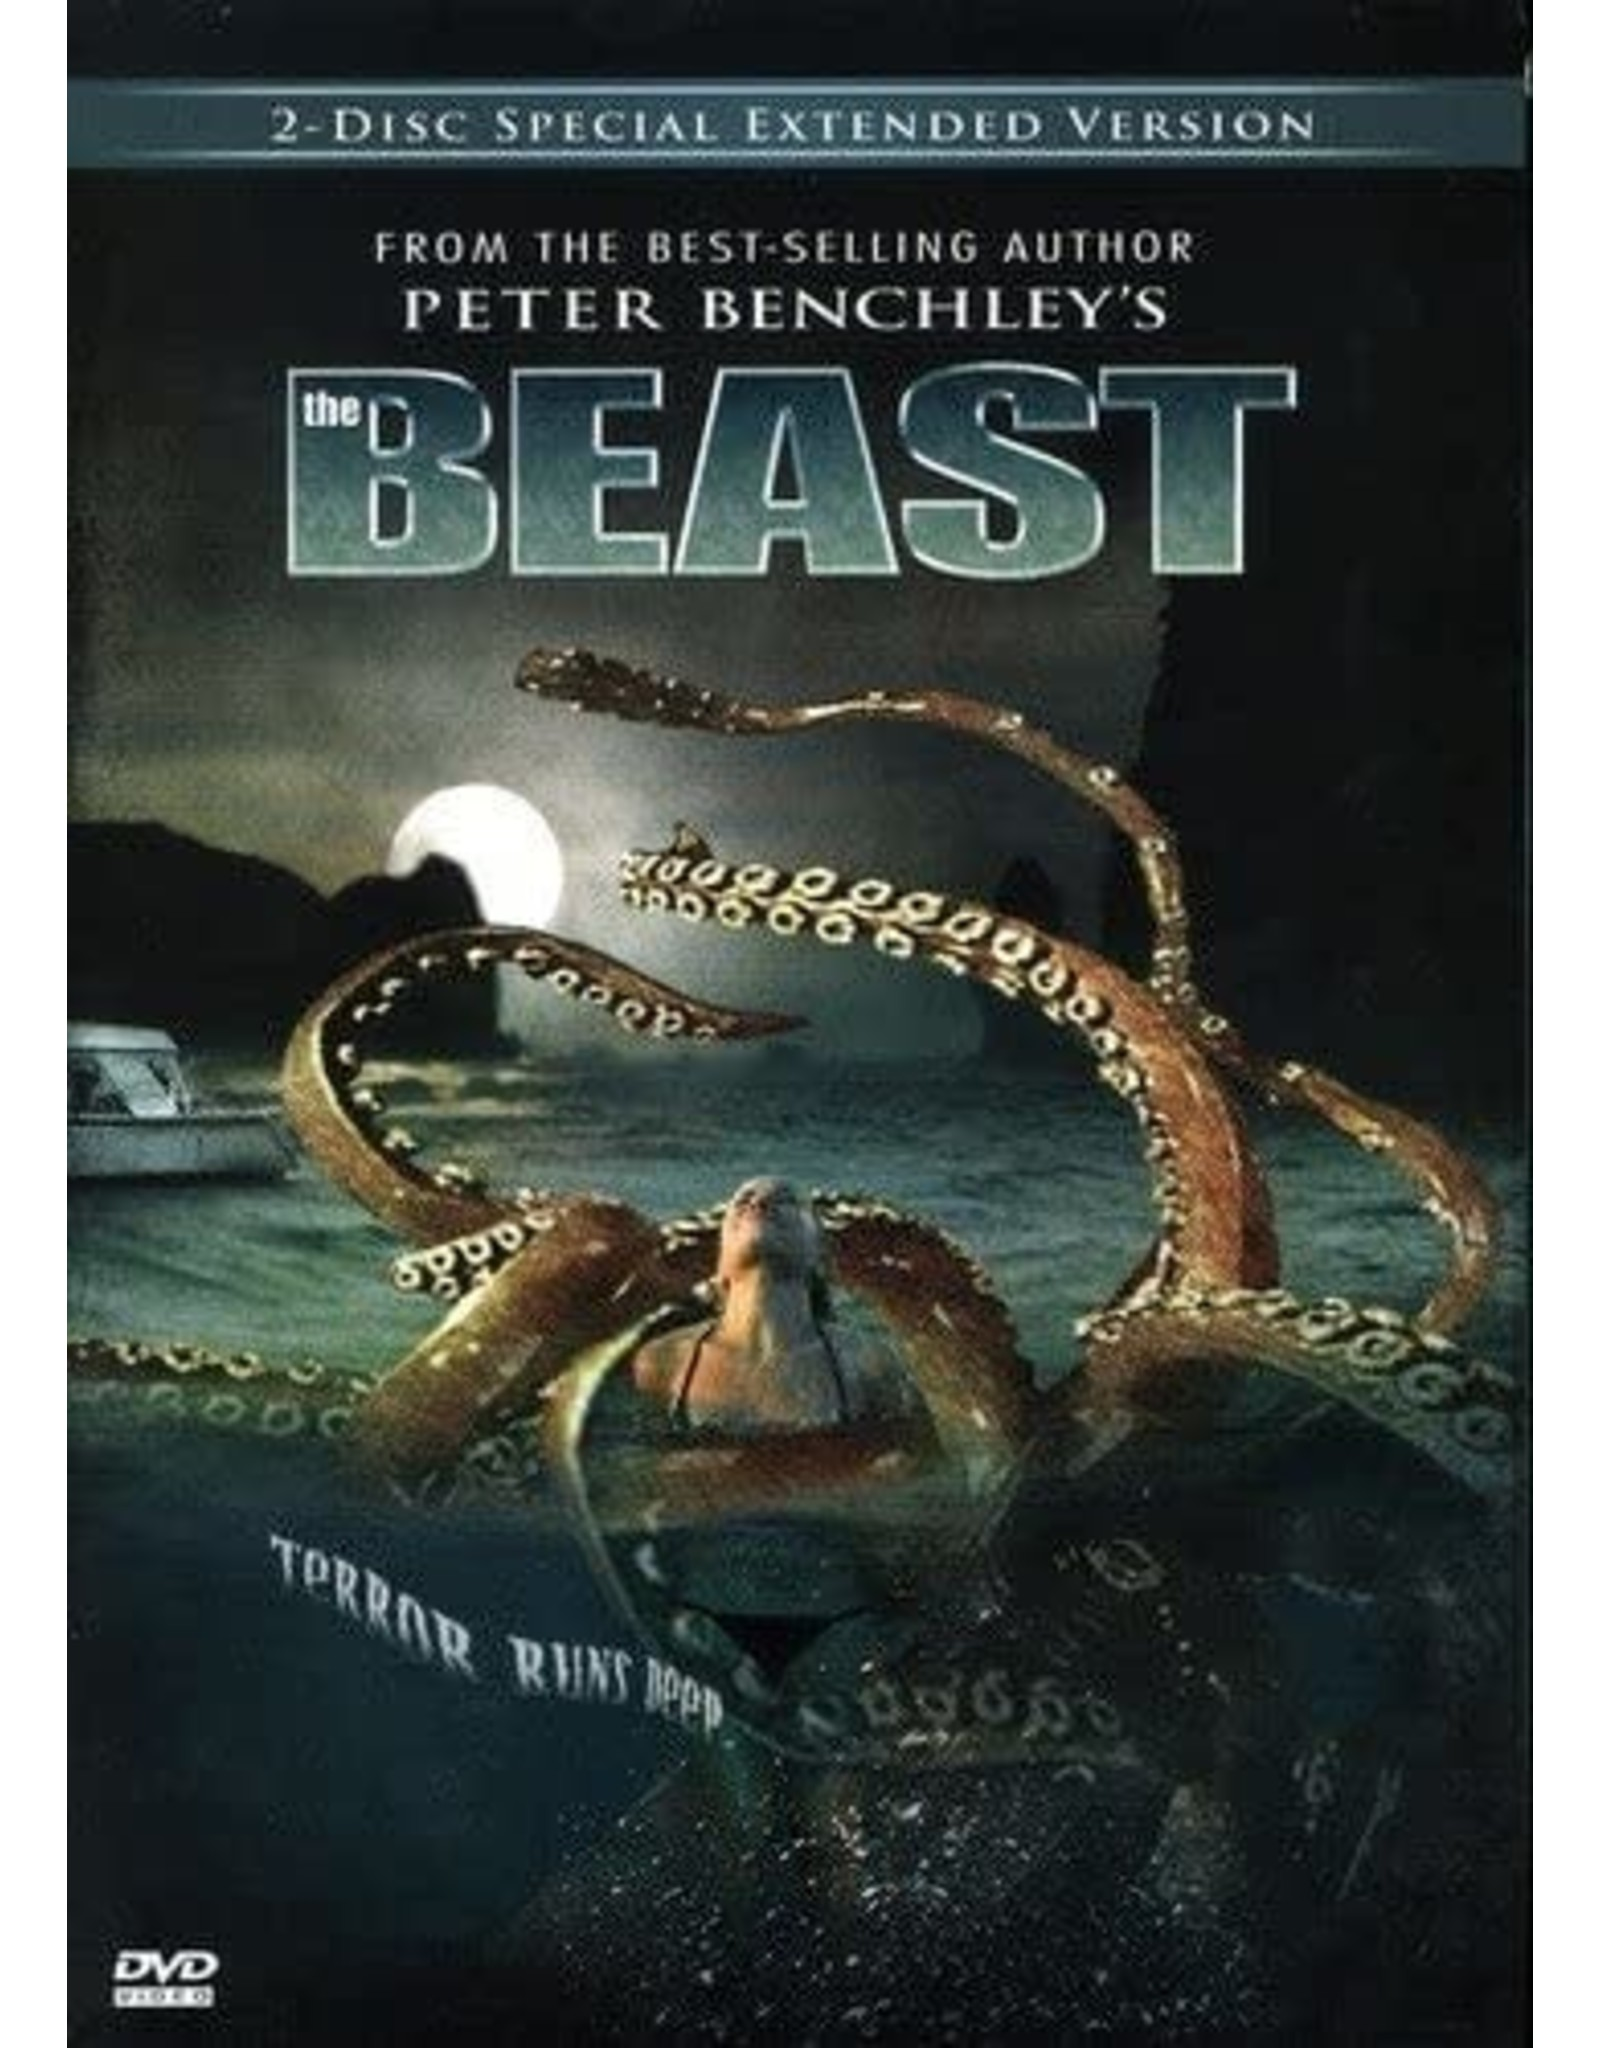 Horror Cult Beast, The 2-Disc Special Extended Version